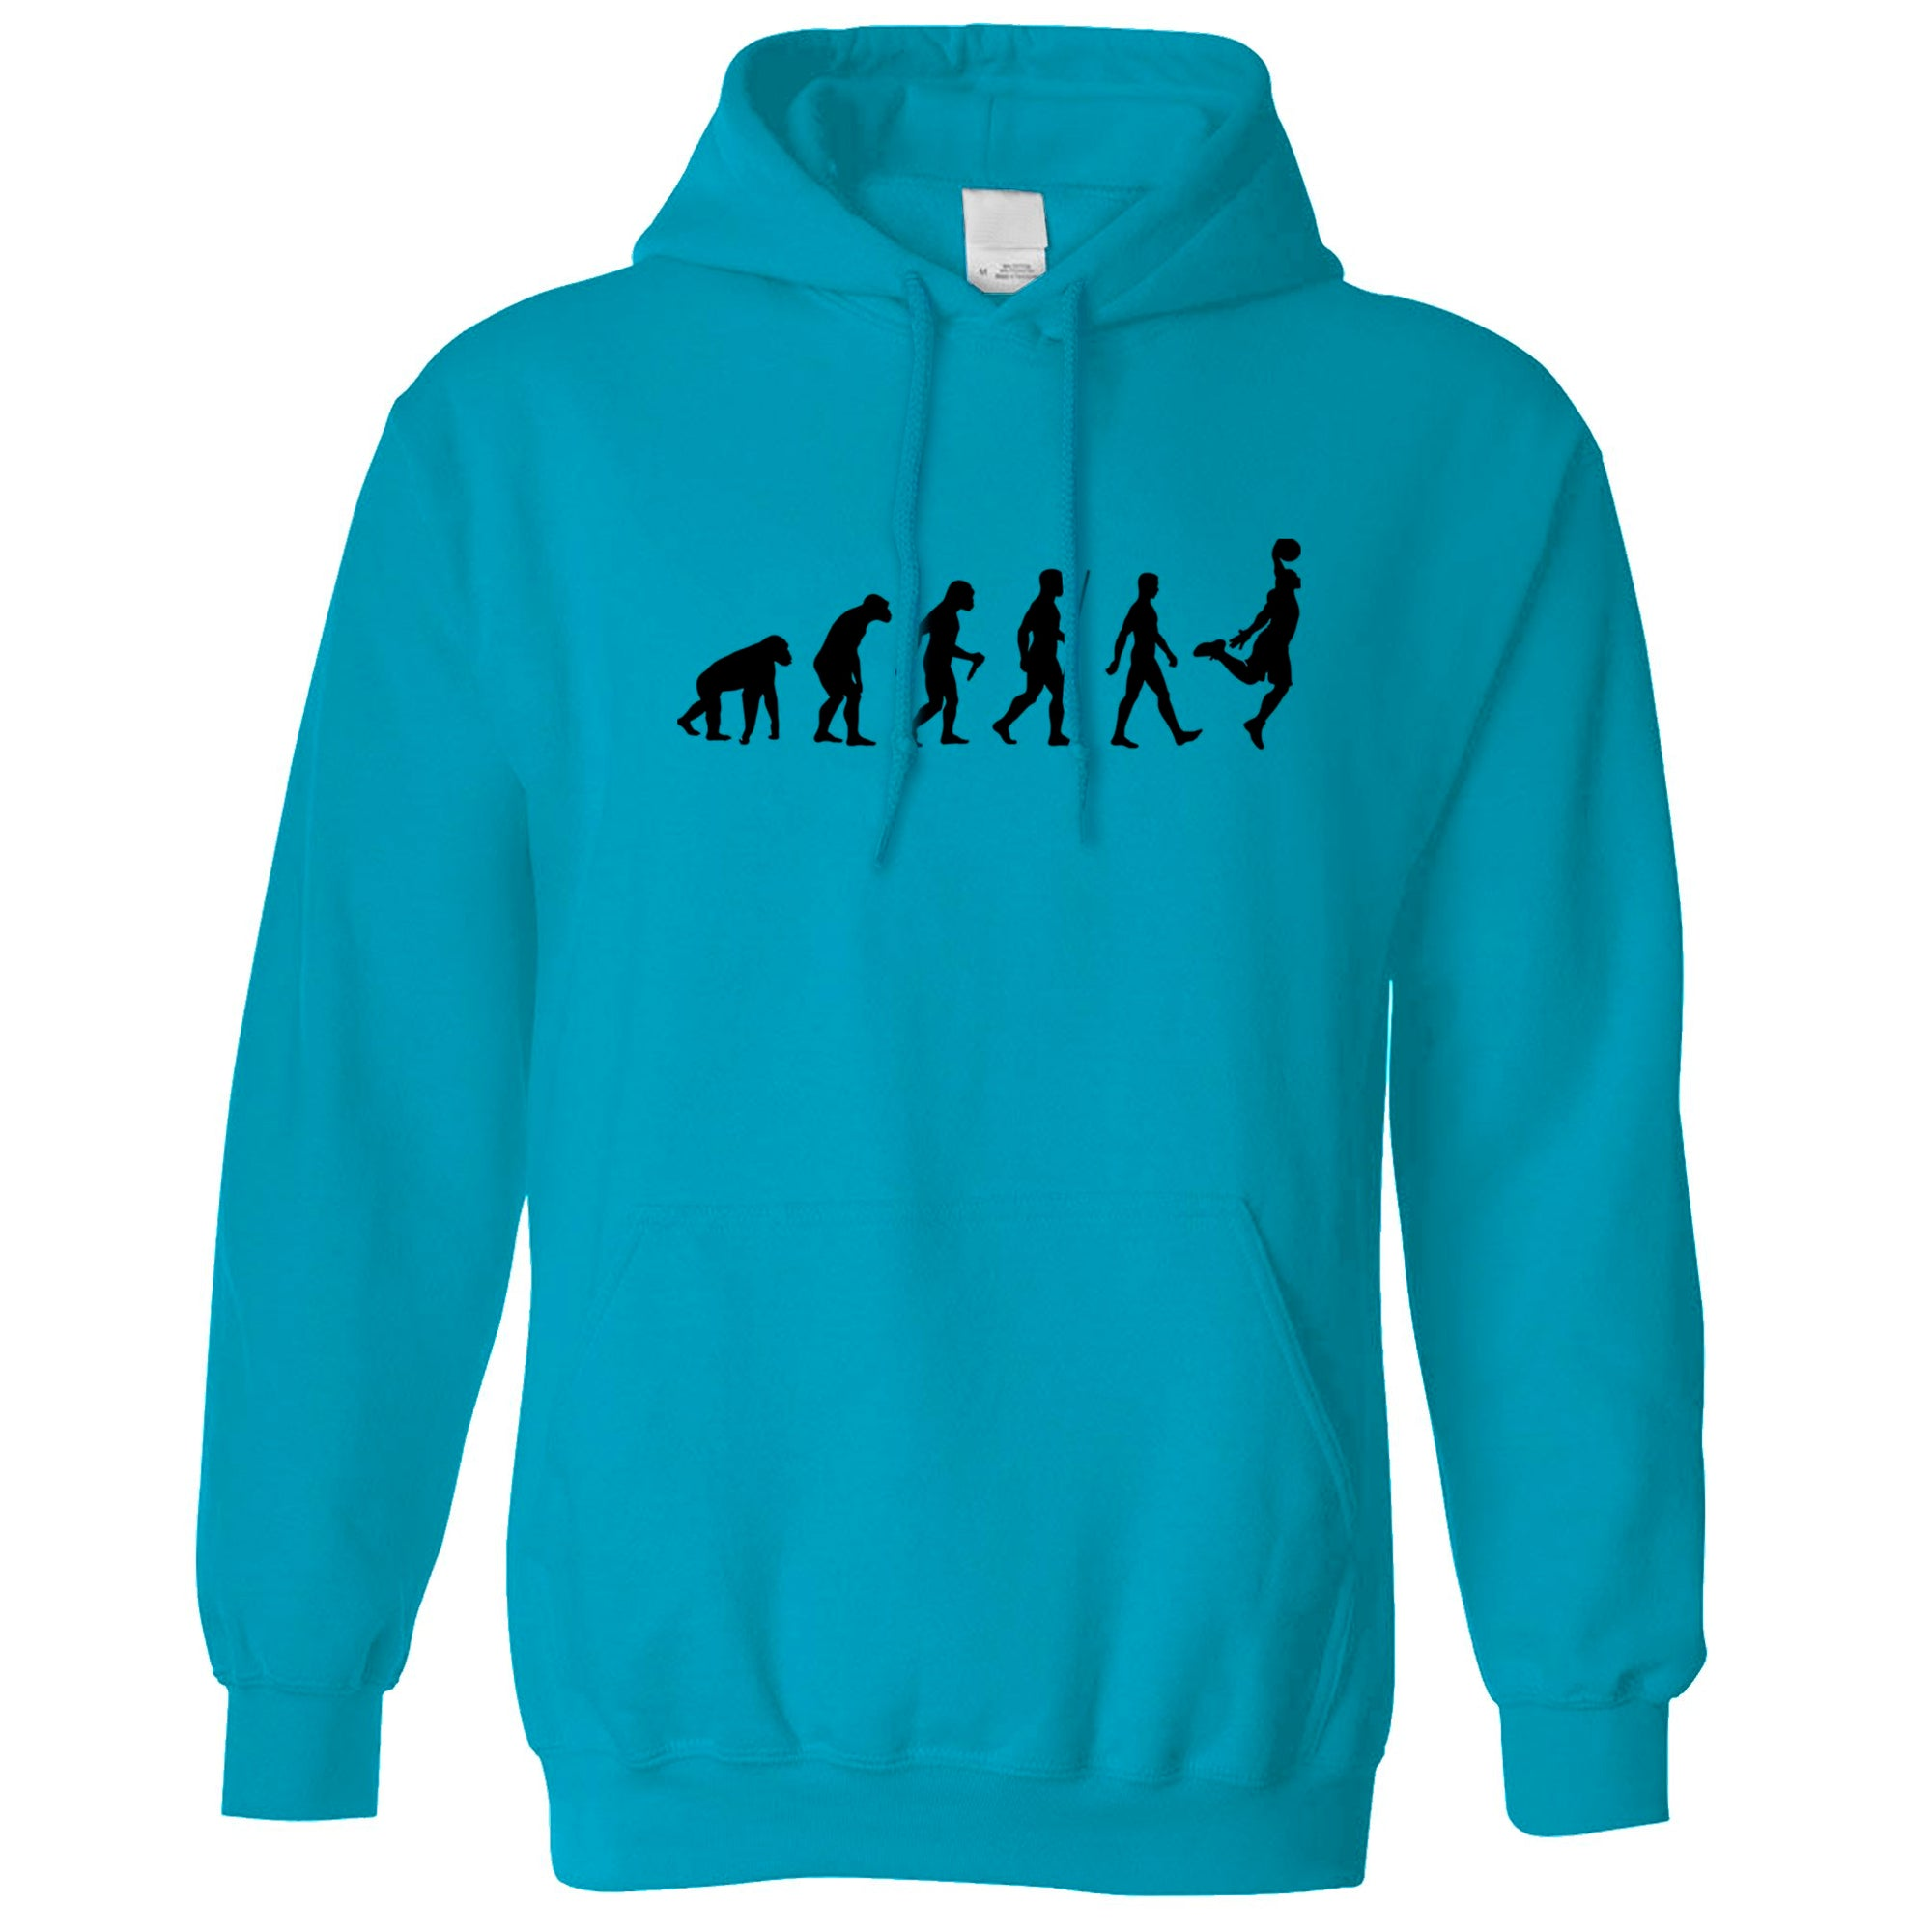 Sports Hoodie Evolution Of A Basketball Player Hooded Jumper